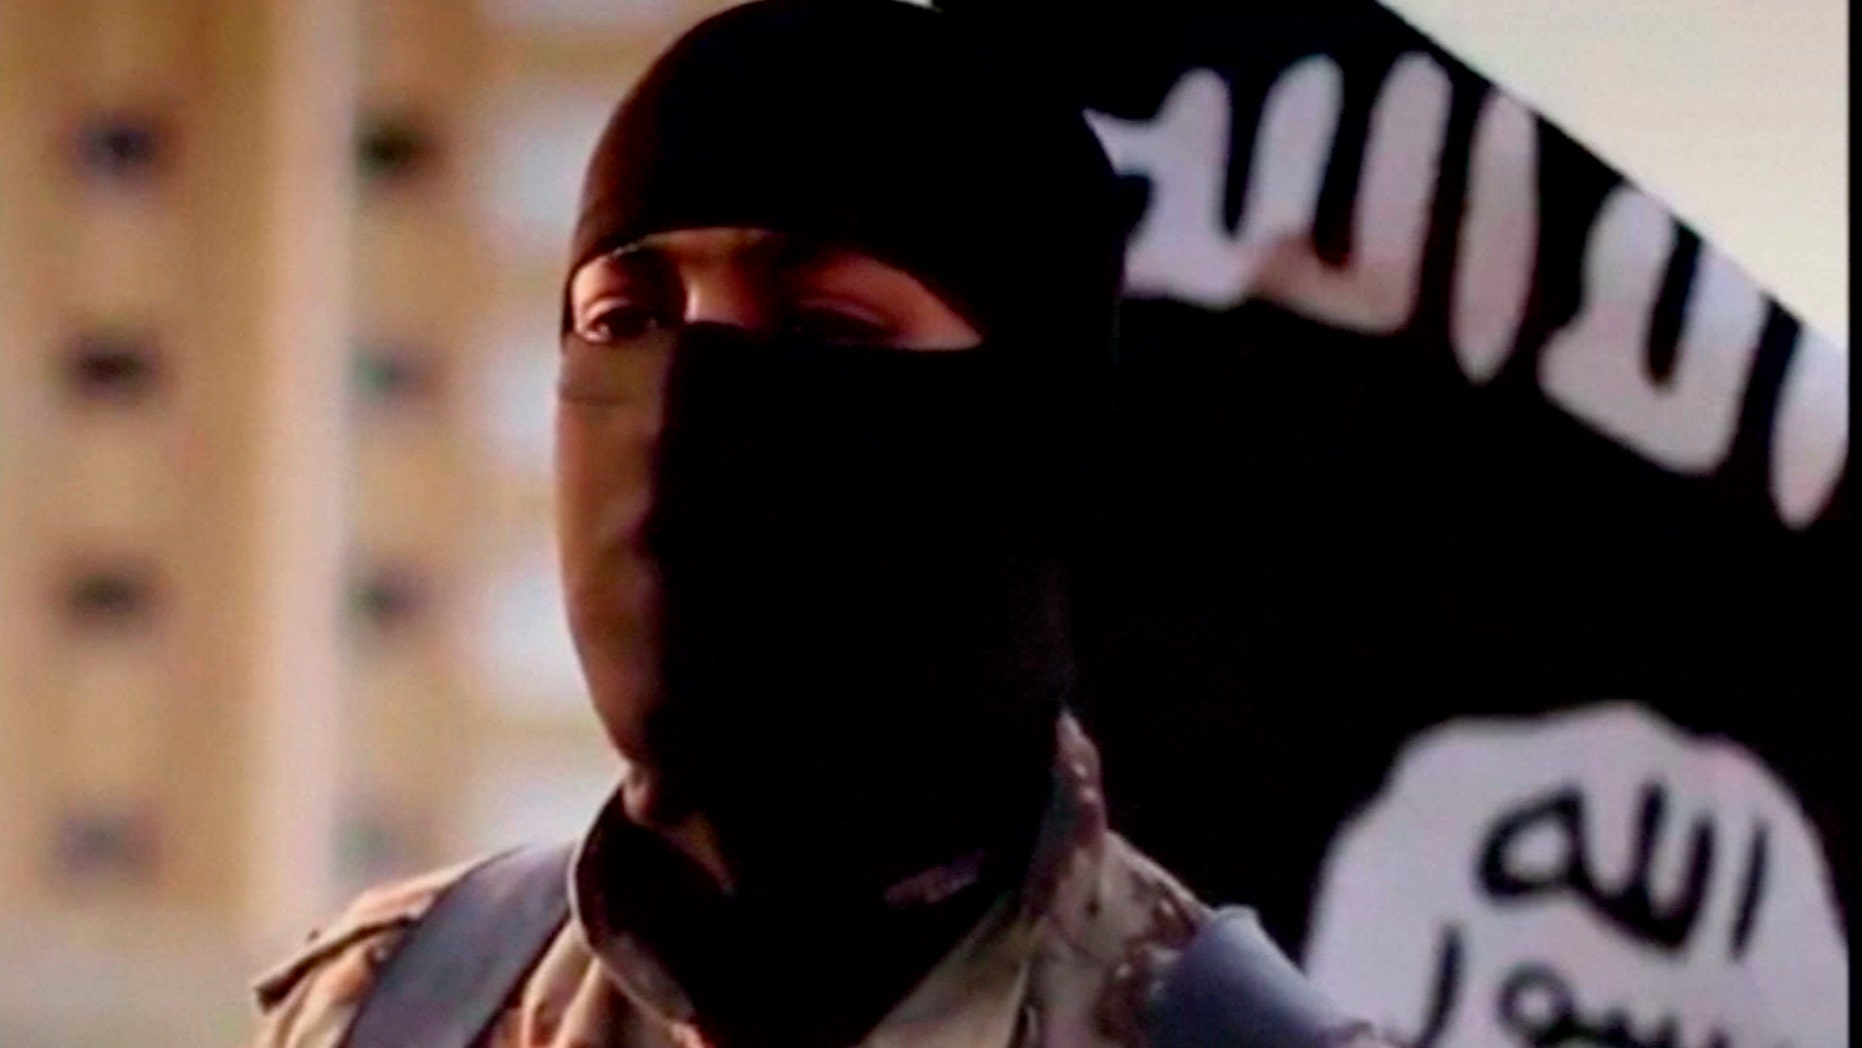 Oct. 8, 2014: A masked man speaking in what is believed to be a North American accent